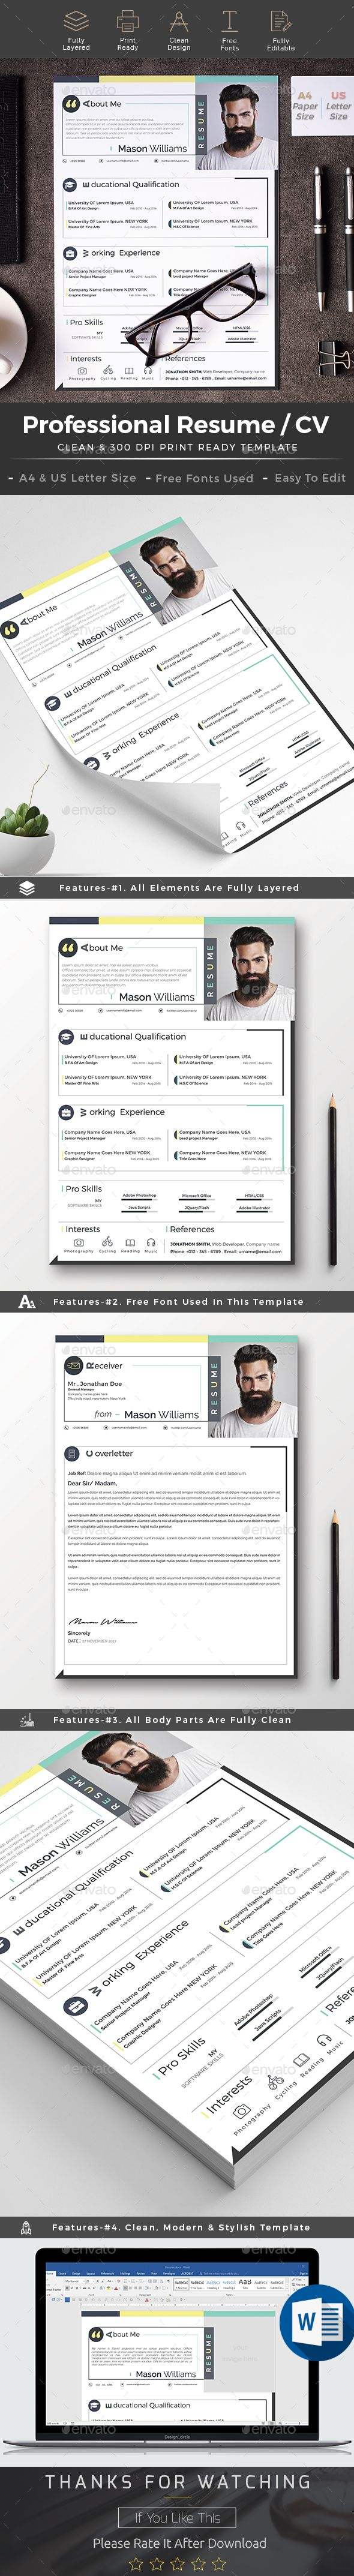 Resume cv word | Letter size, Template and Resume cv